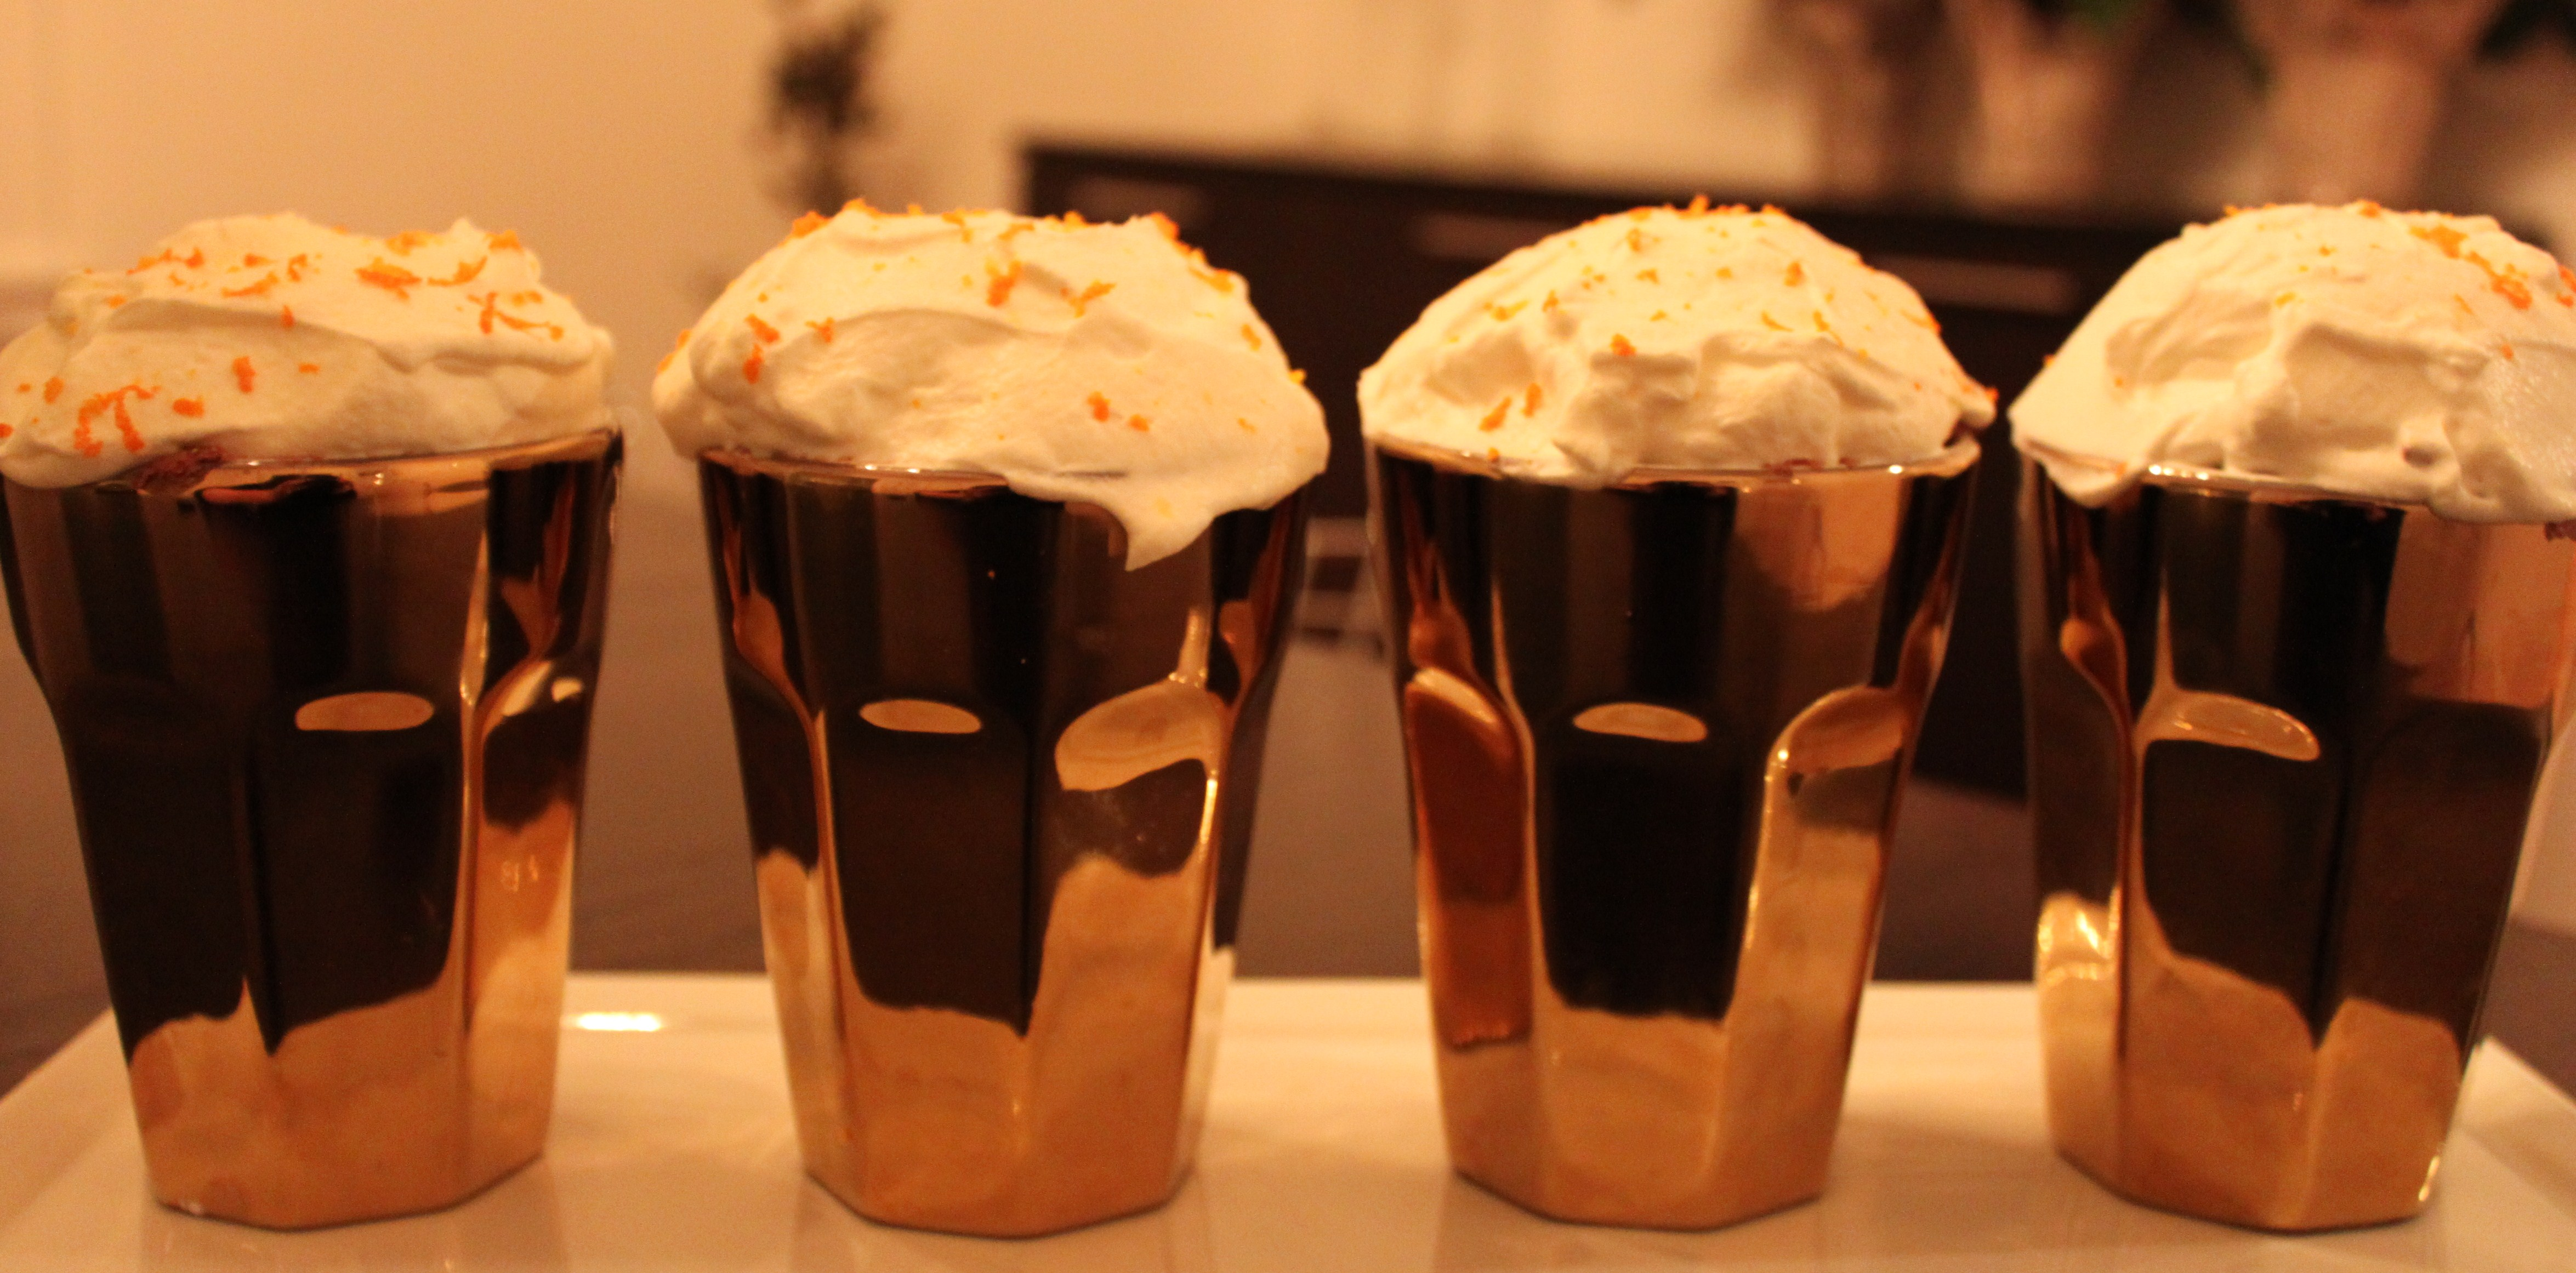 Chocolate Mousse with Whipped Cream & Dusts of Orange Zest   Mod Meals ...